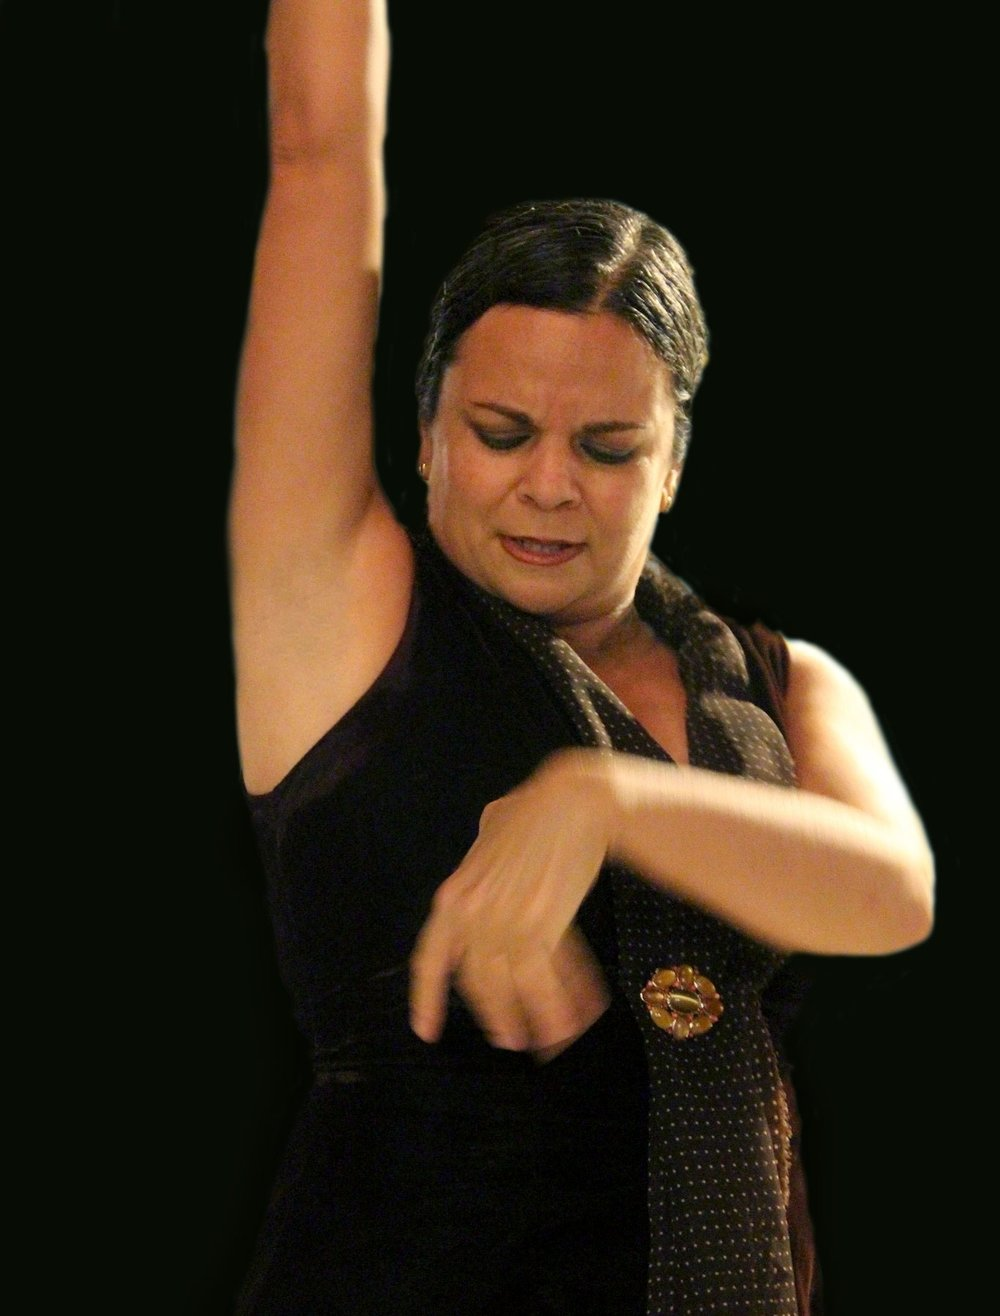 Drea-dancing-large copy.jpg